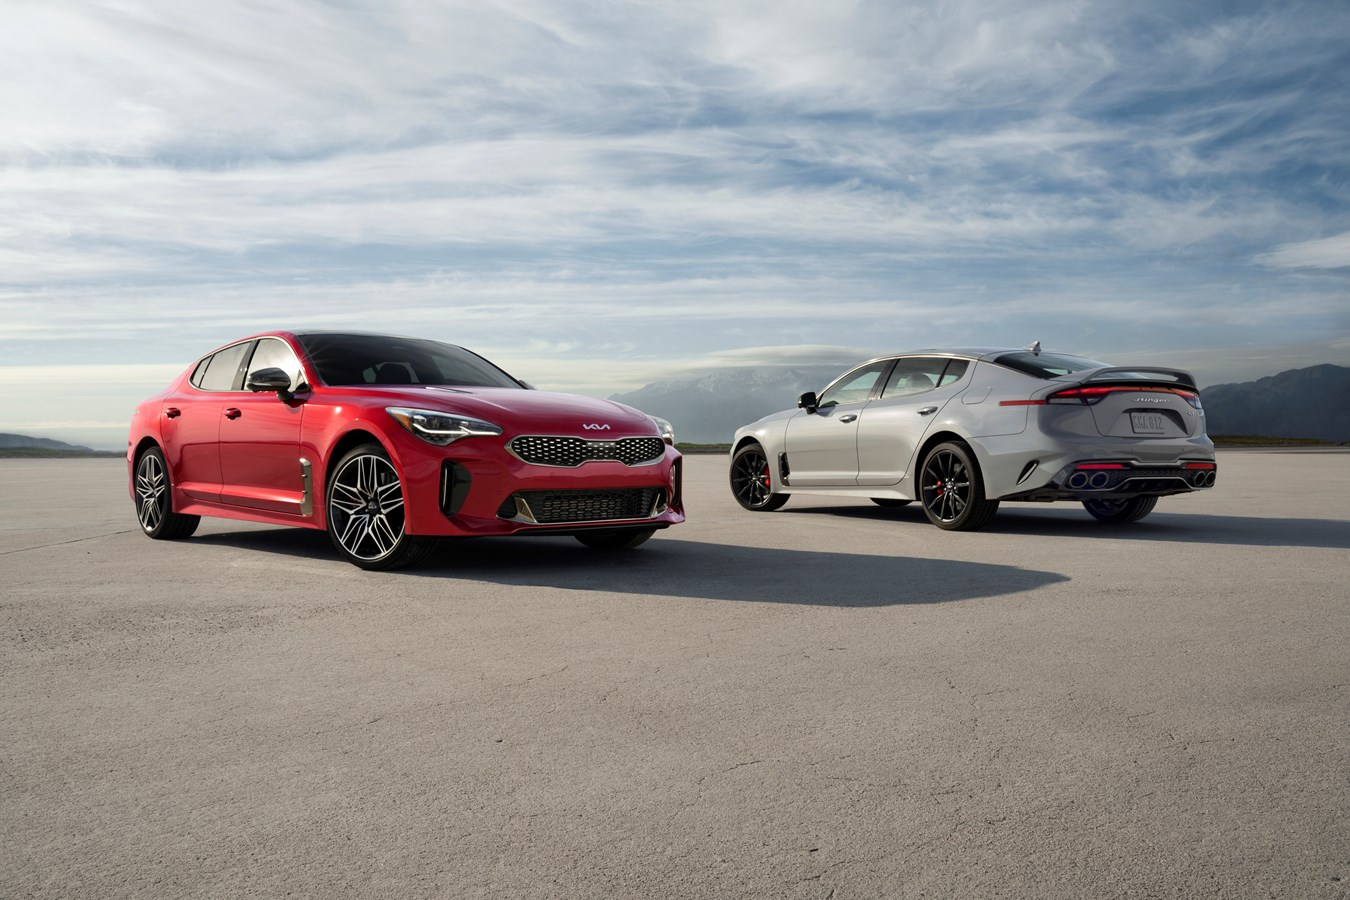 2022 Stinger GT and Scorpion Special Edition